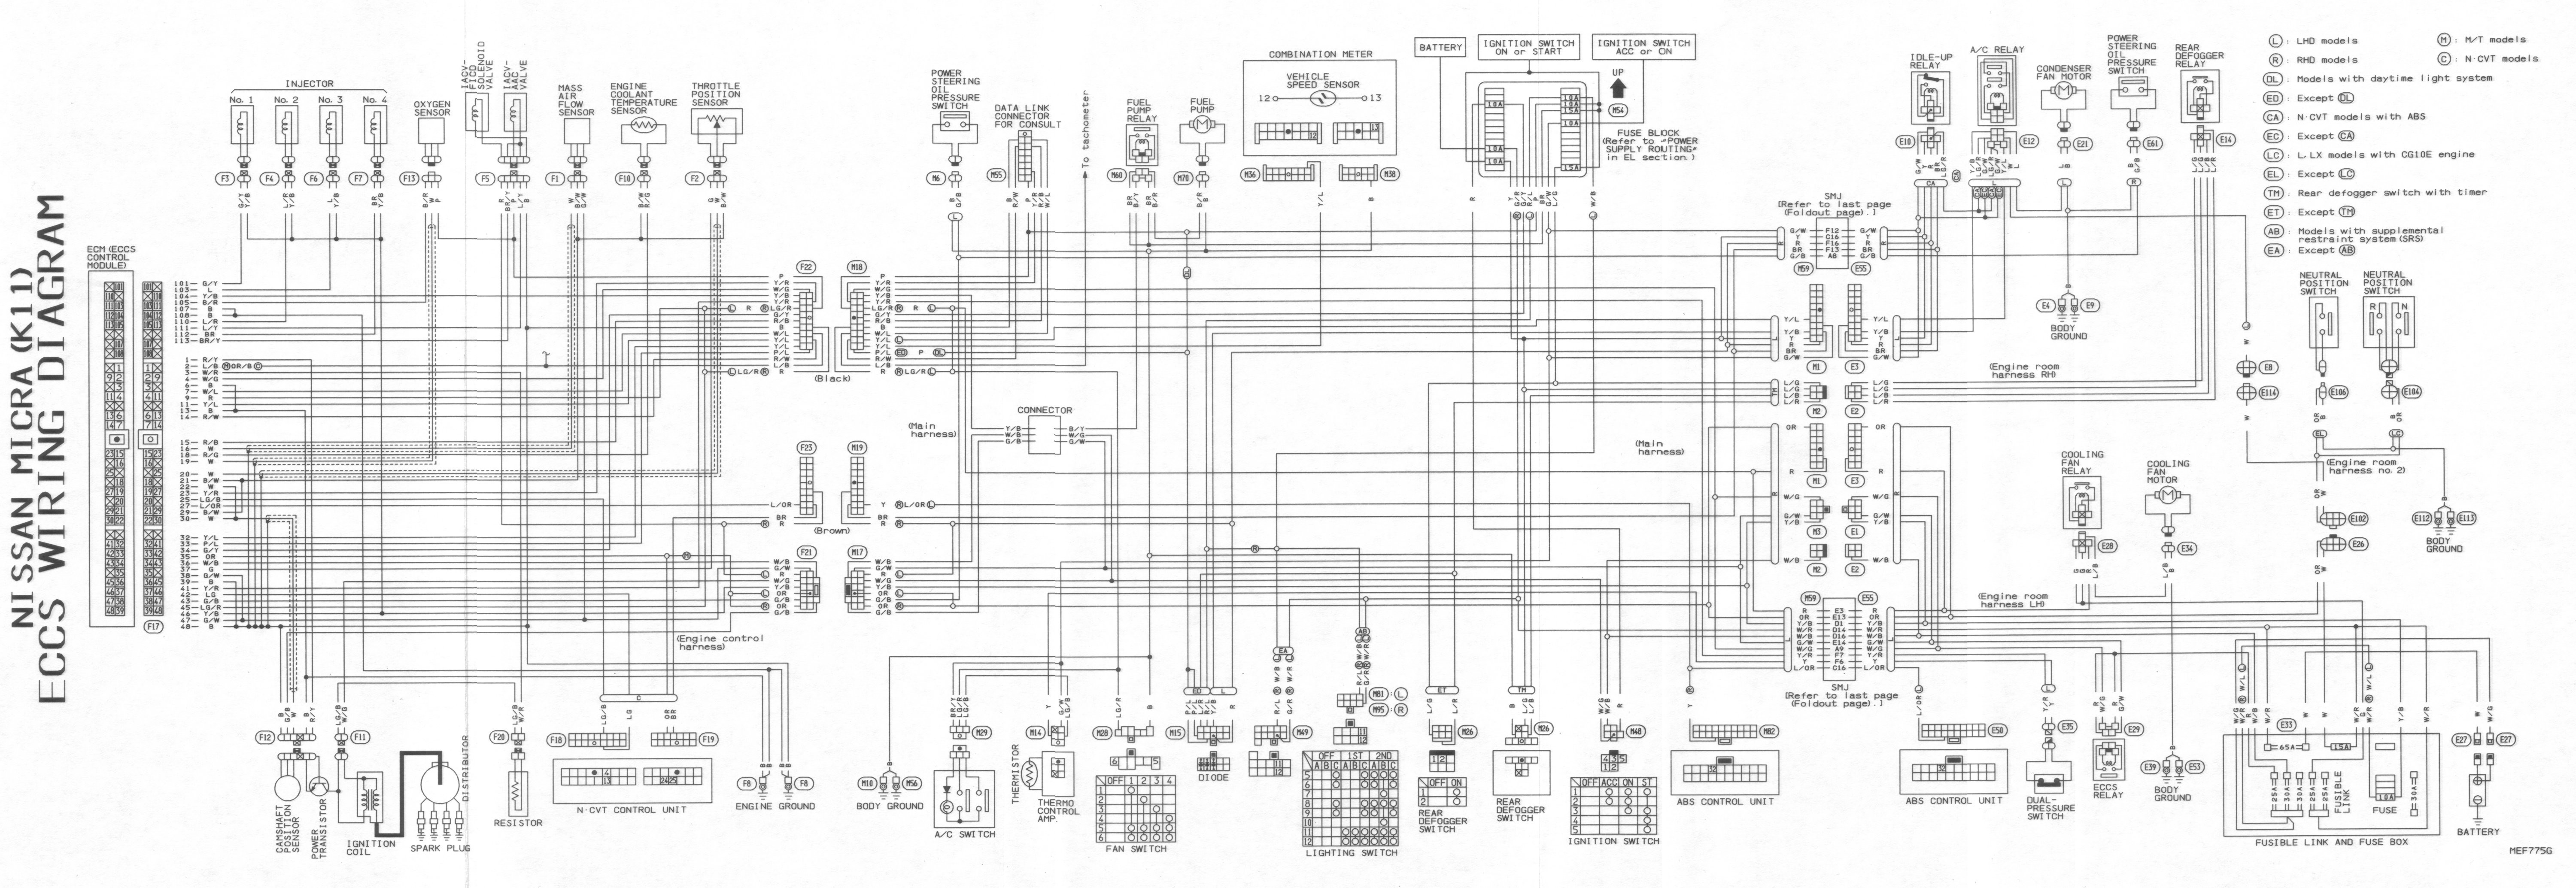 Nissan Micra Wiring Diagram Free Trusted Diagrams 91 Sentra Picture And Schematics Rh Rivcas Org Electrical